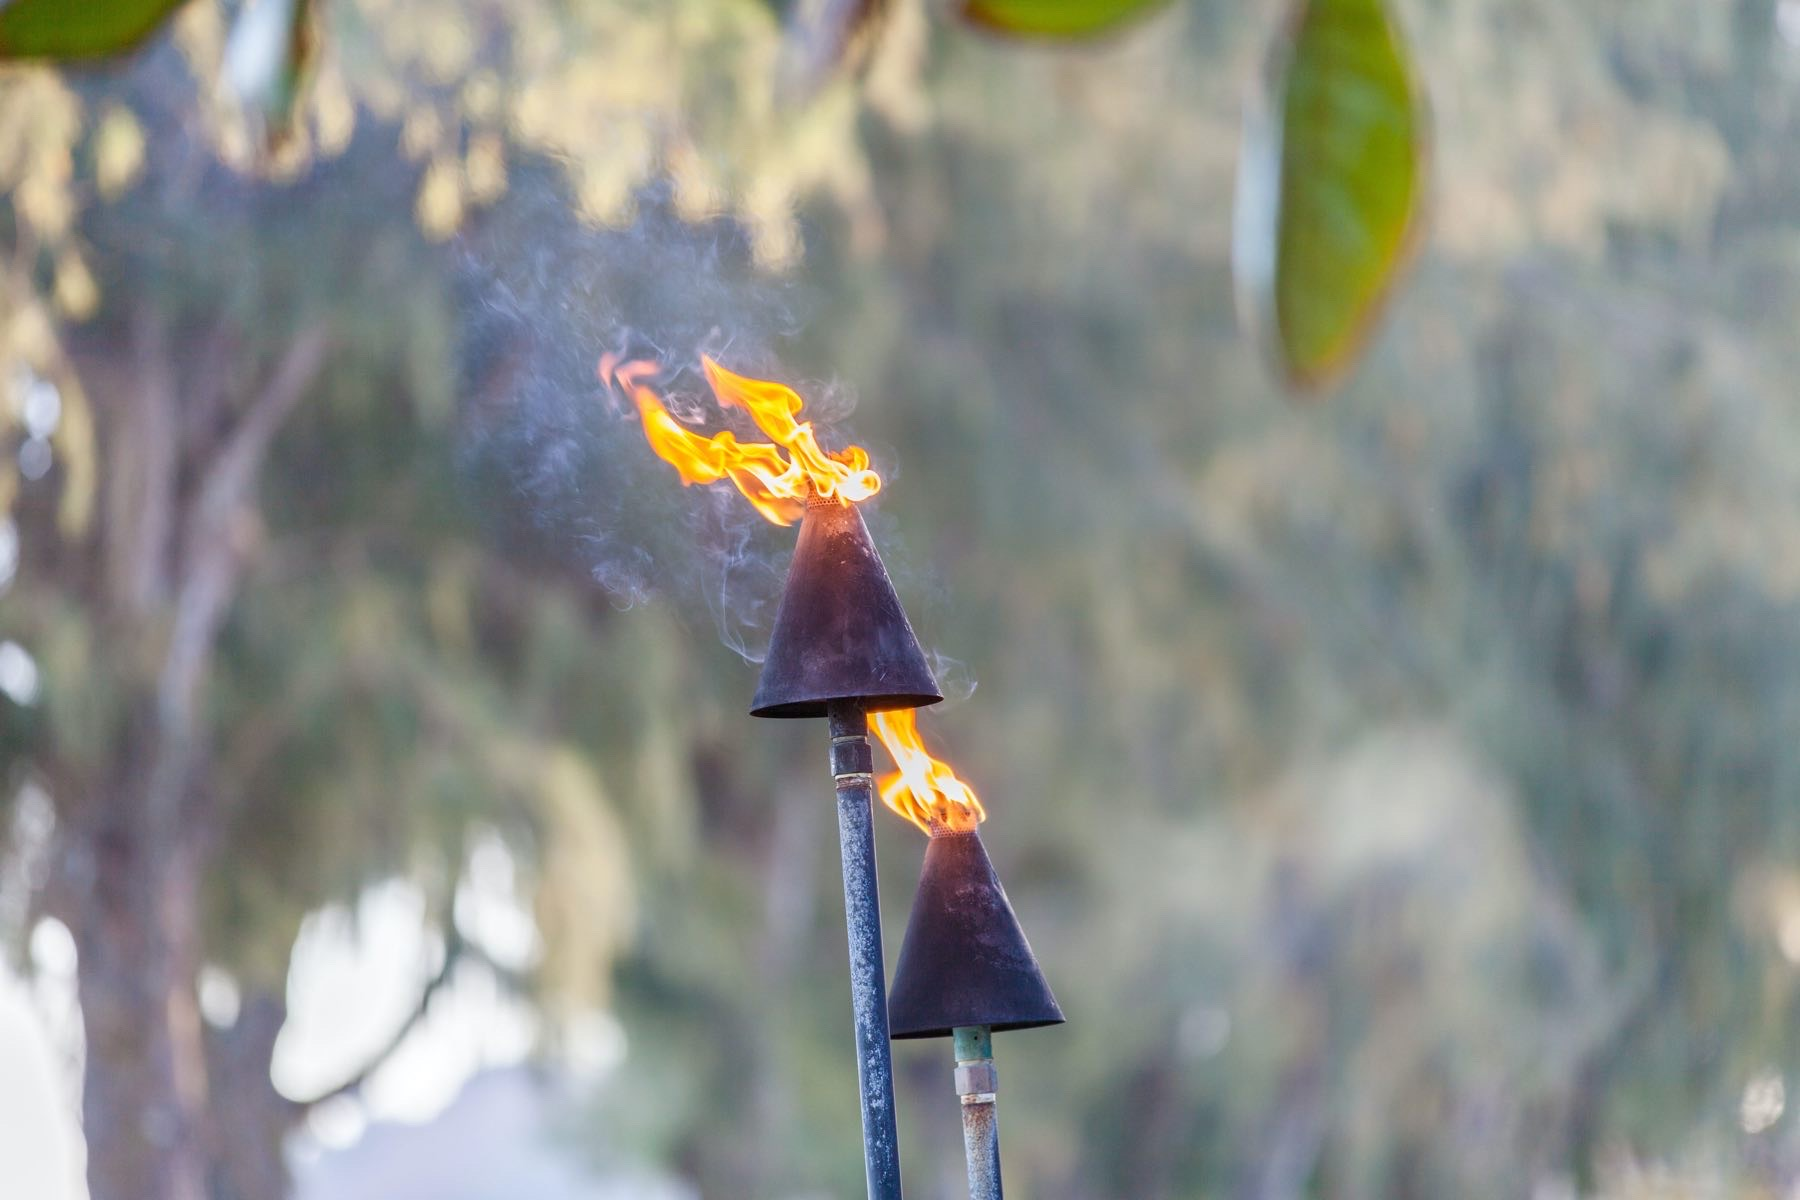 Pitta is the fire that burns in all of us, like Tiki Torches in Hawaii.